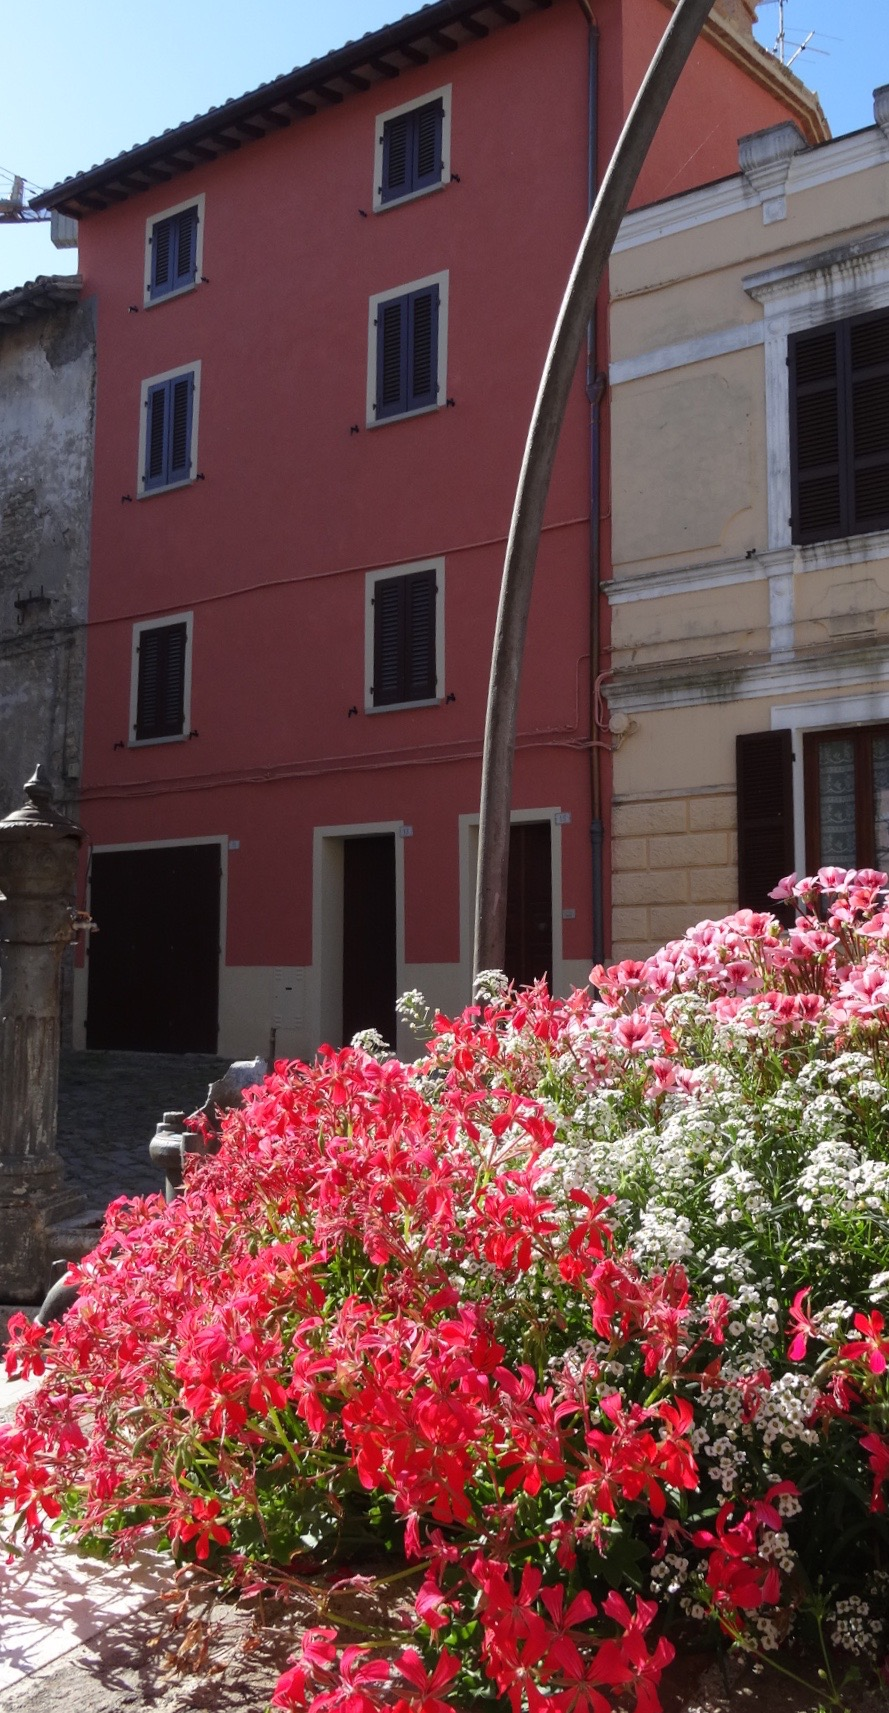 italy flowers pink building